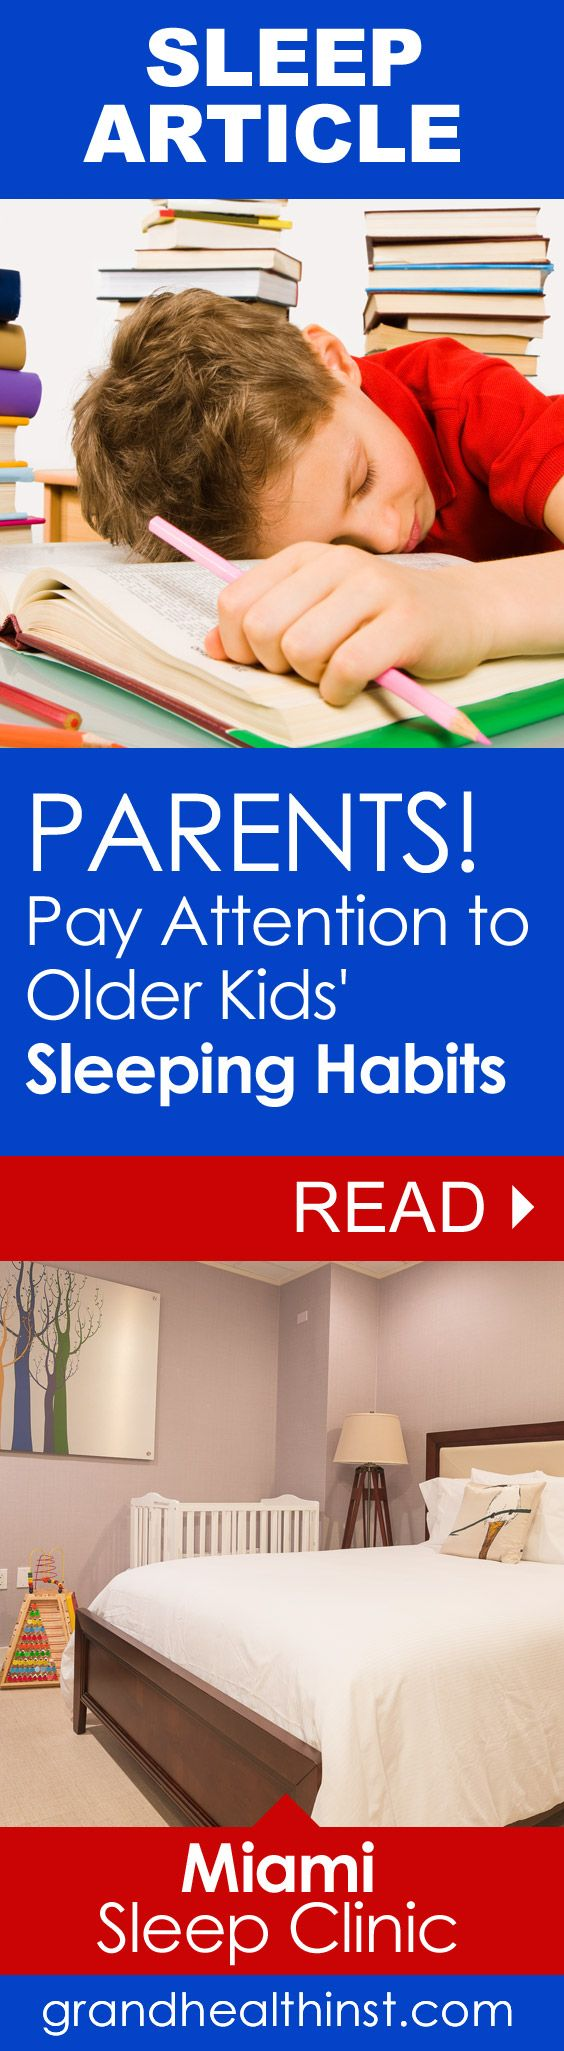 Sleep supports healthy growth and development. Children who sleep less than the recommended number of hours suffer an increase in behavior, learning and attention disorders... http://www.grandhealthinst.com/